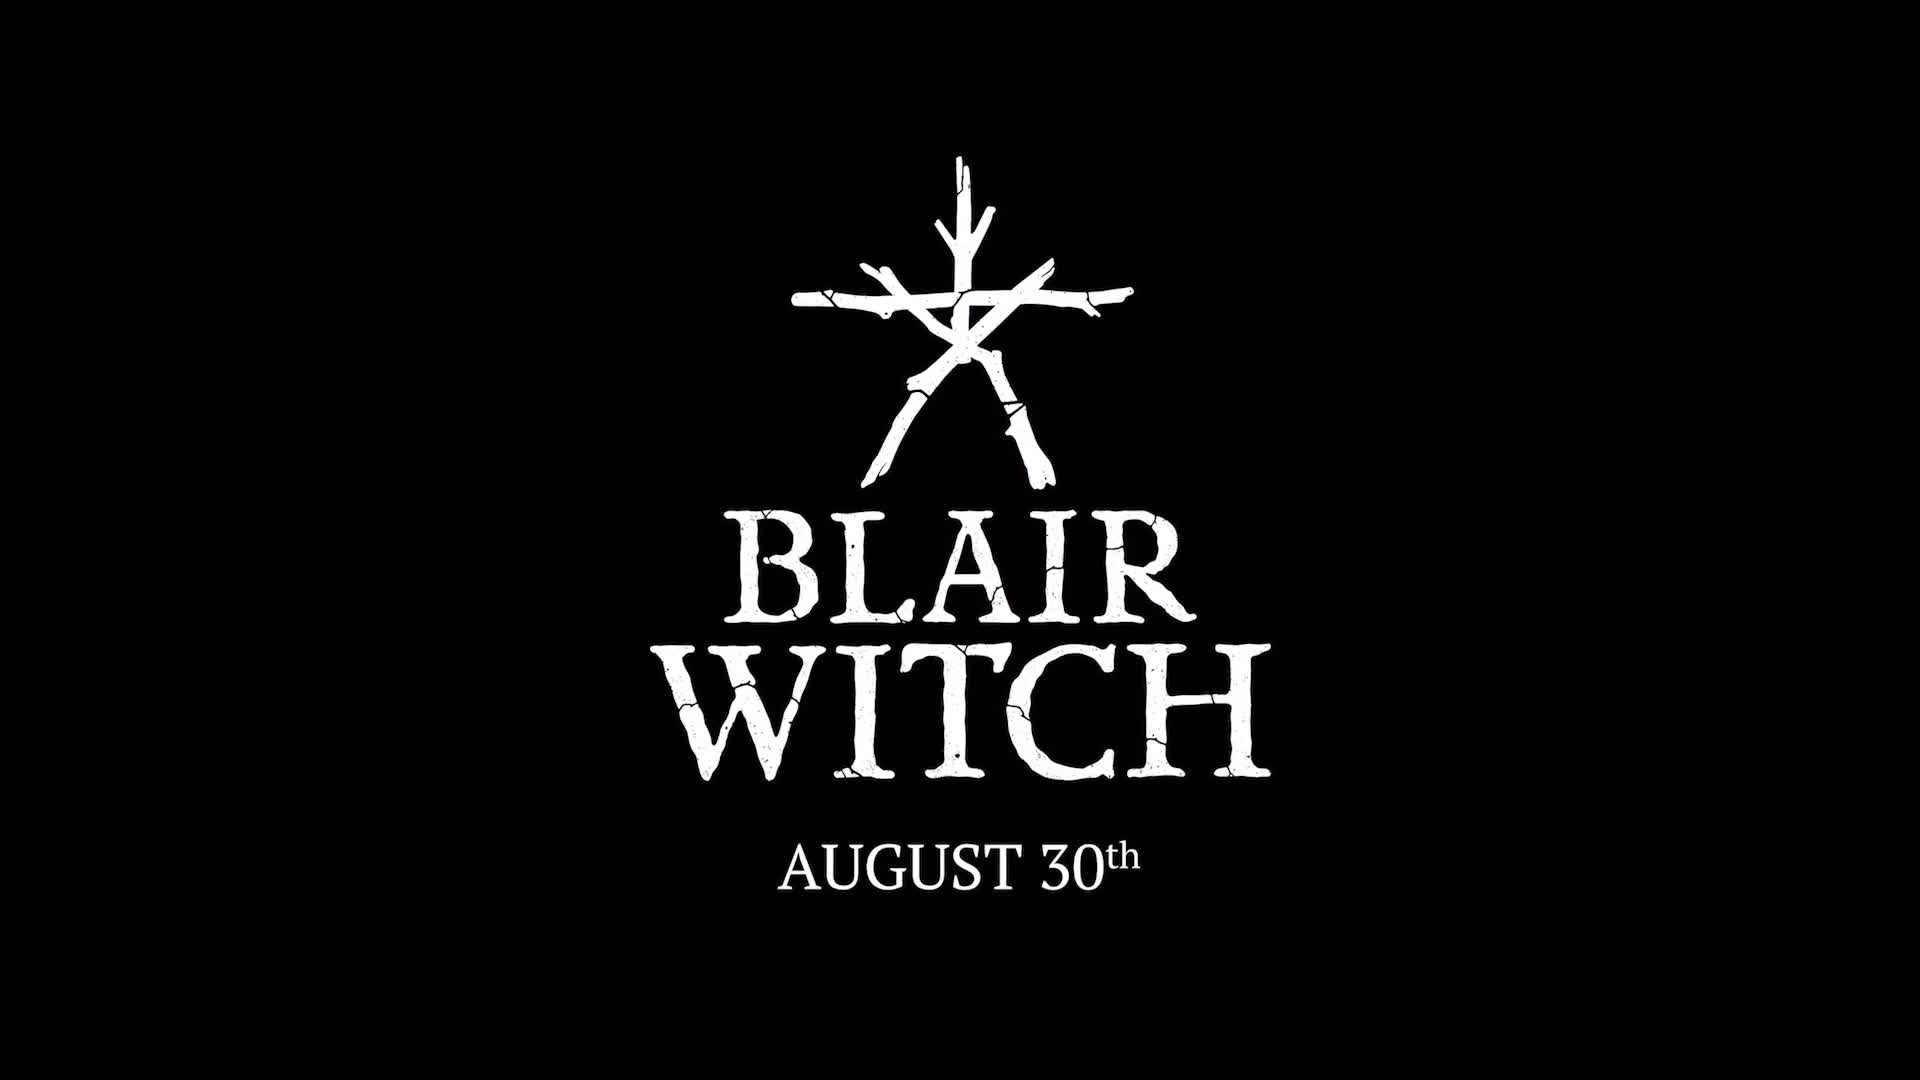 Trailer, Xbox, E3, E3 2019, Horror, Survival Horror, Blair Witch